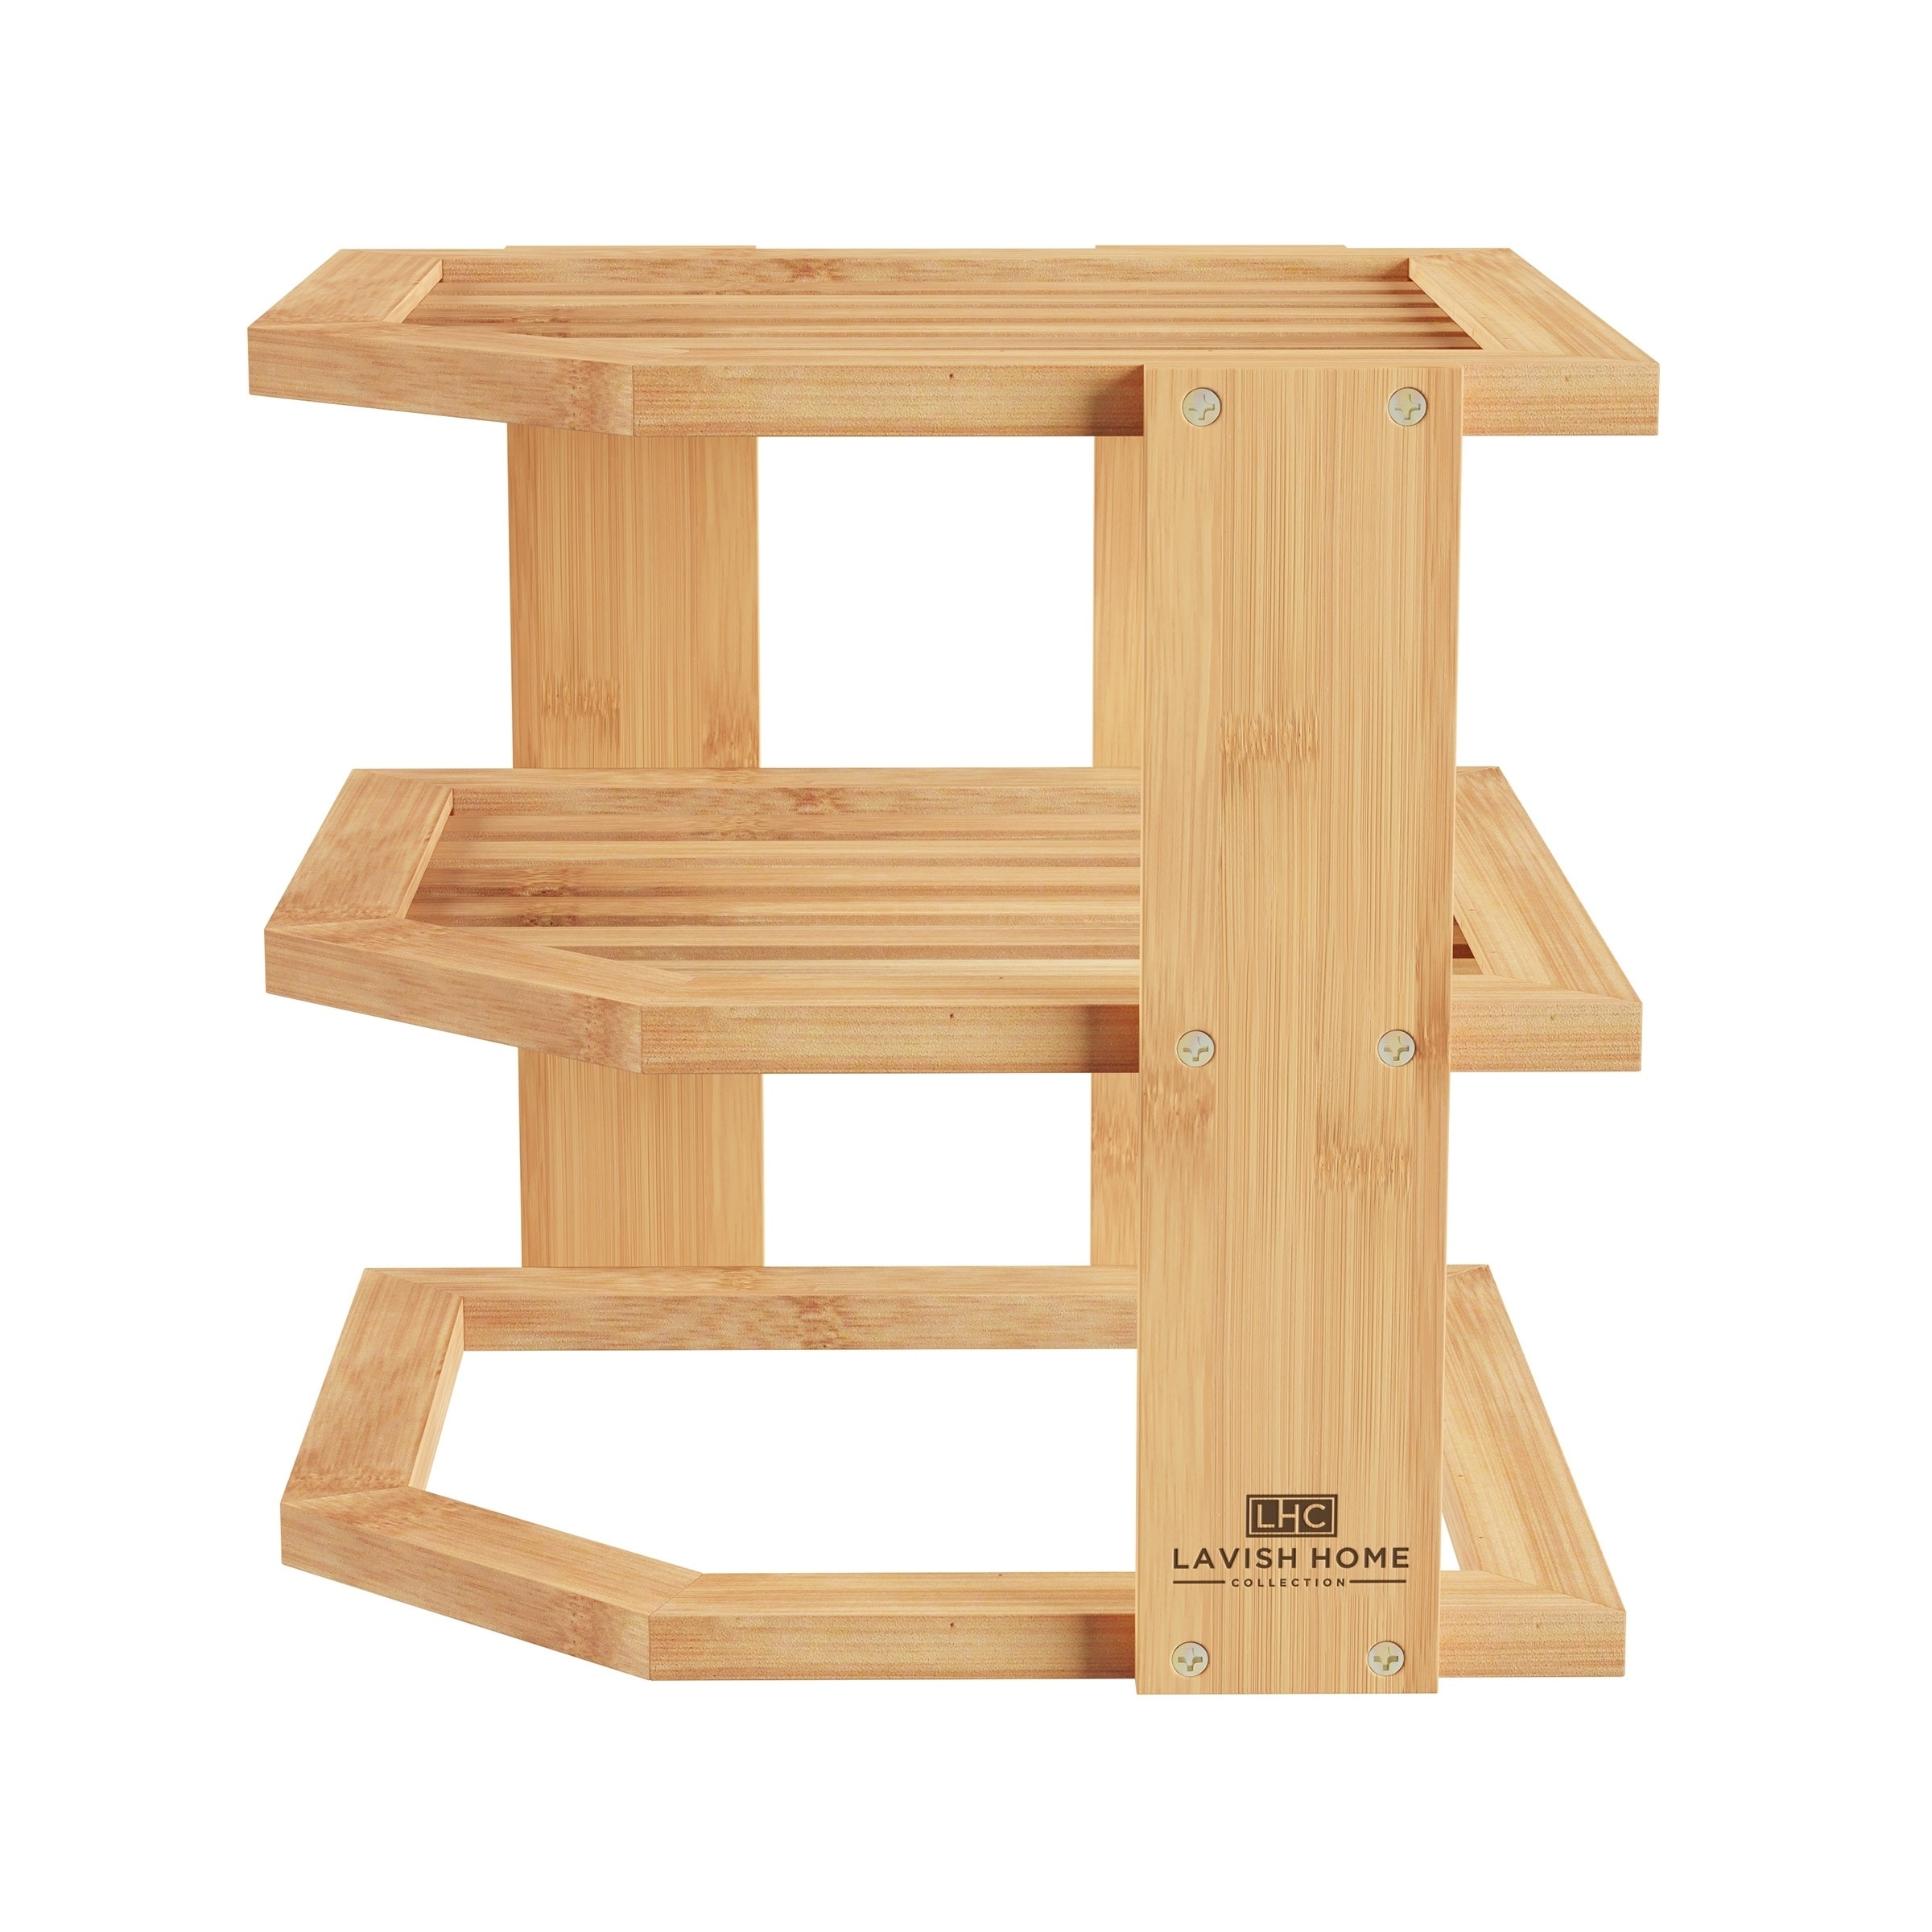 Tiered Bamboo Corner Shelf for Kitchen or Countertop Organization, Natural  Wood by Lavish Home